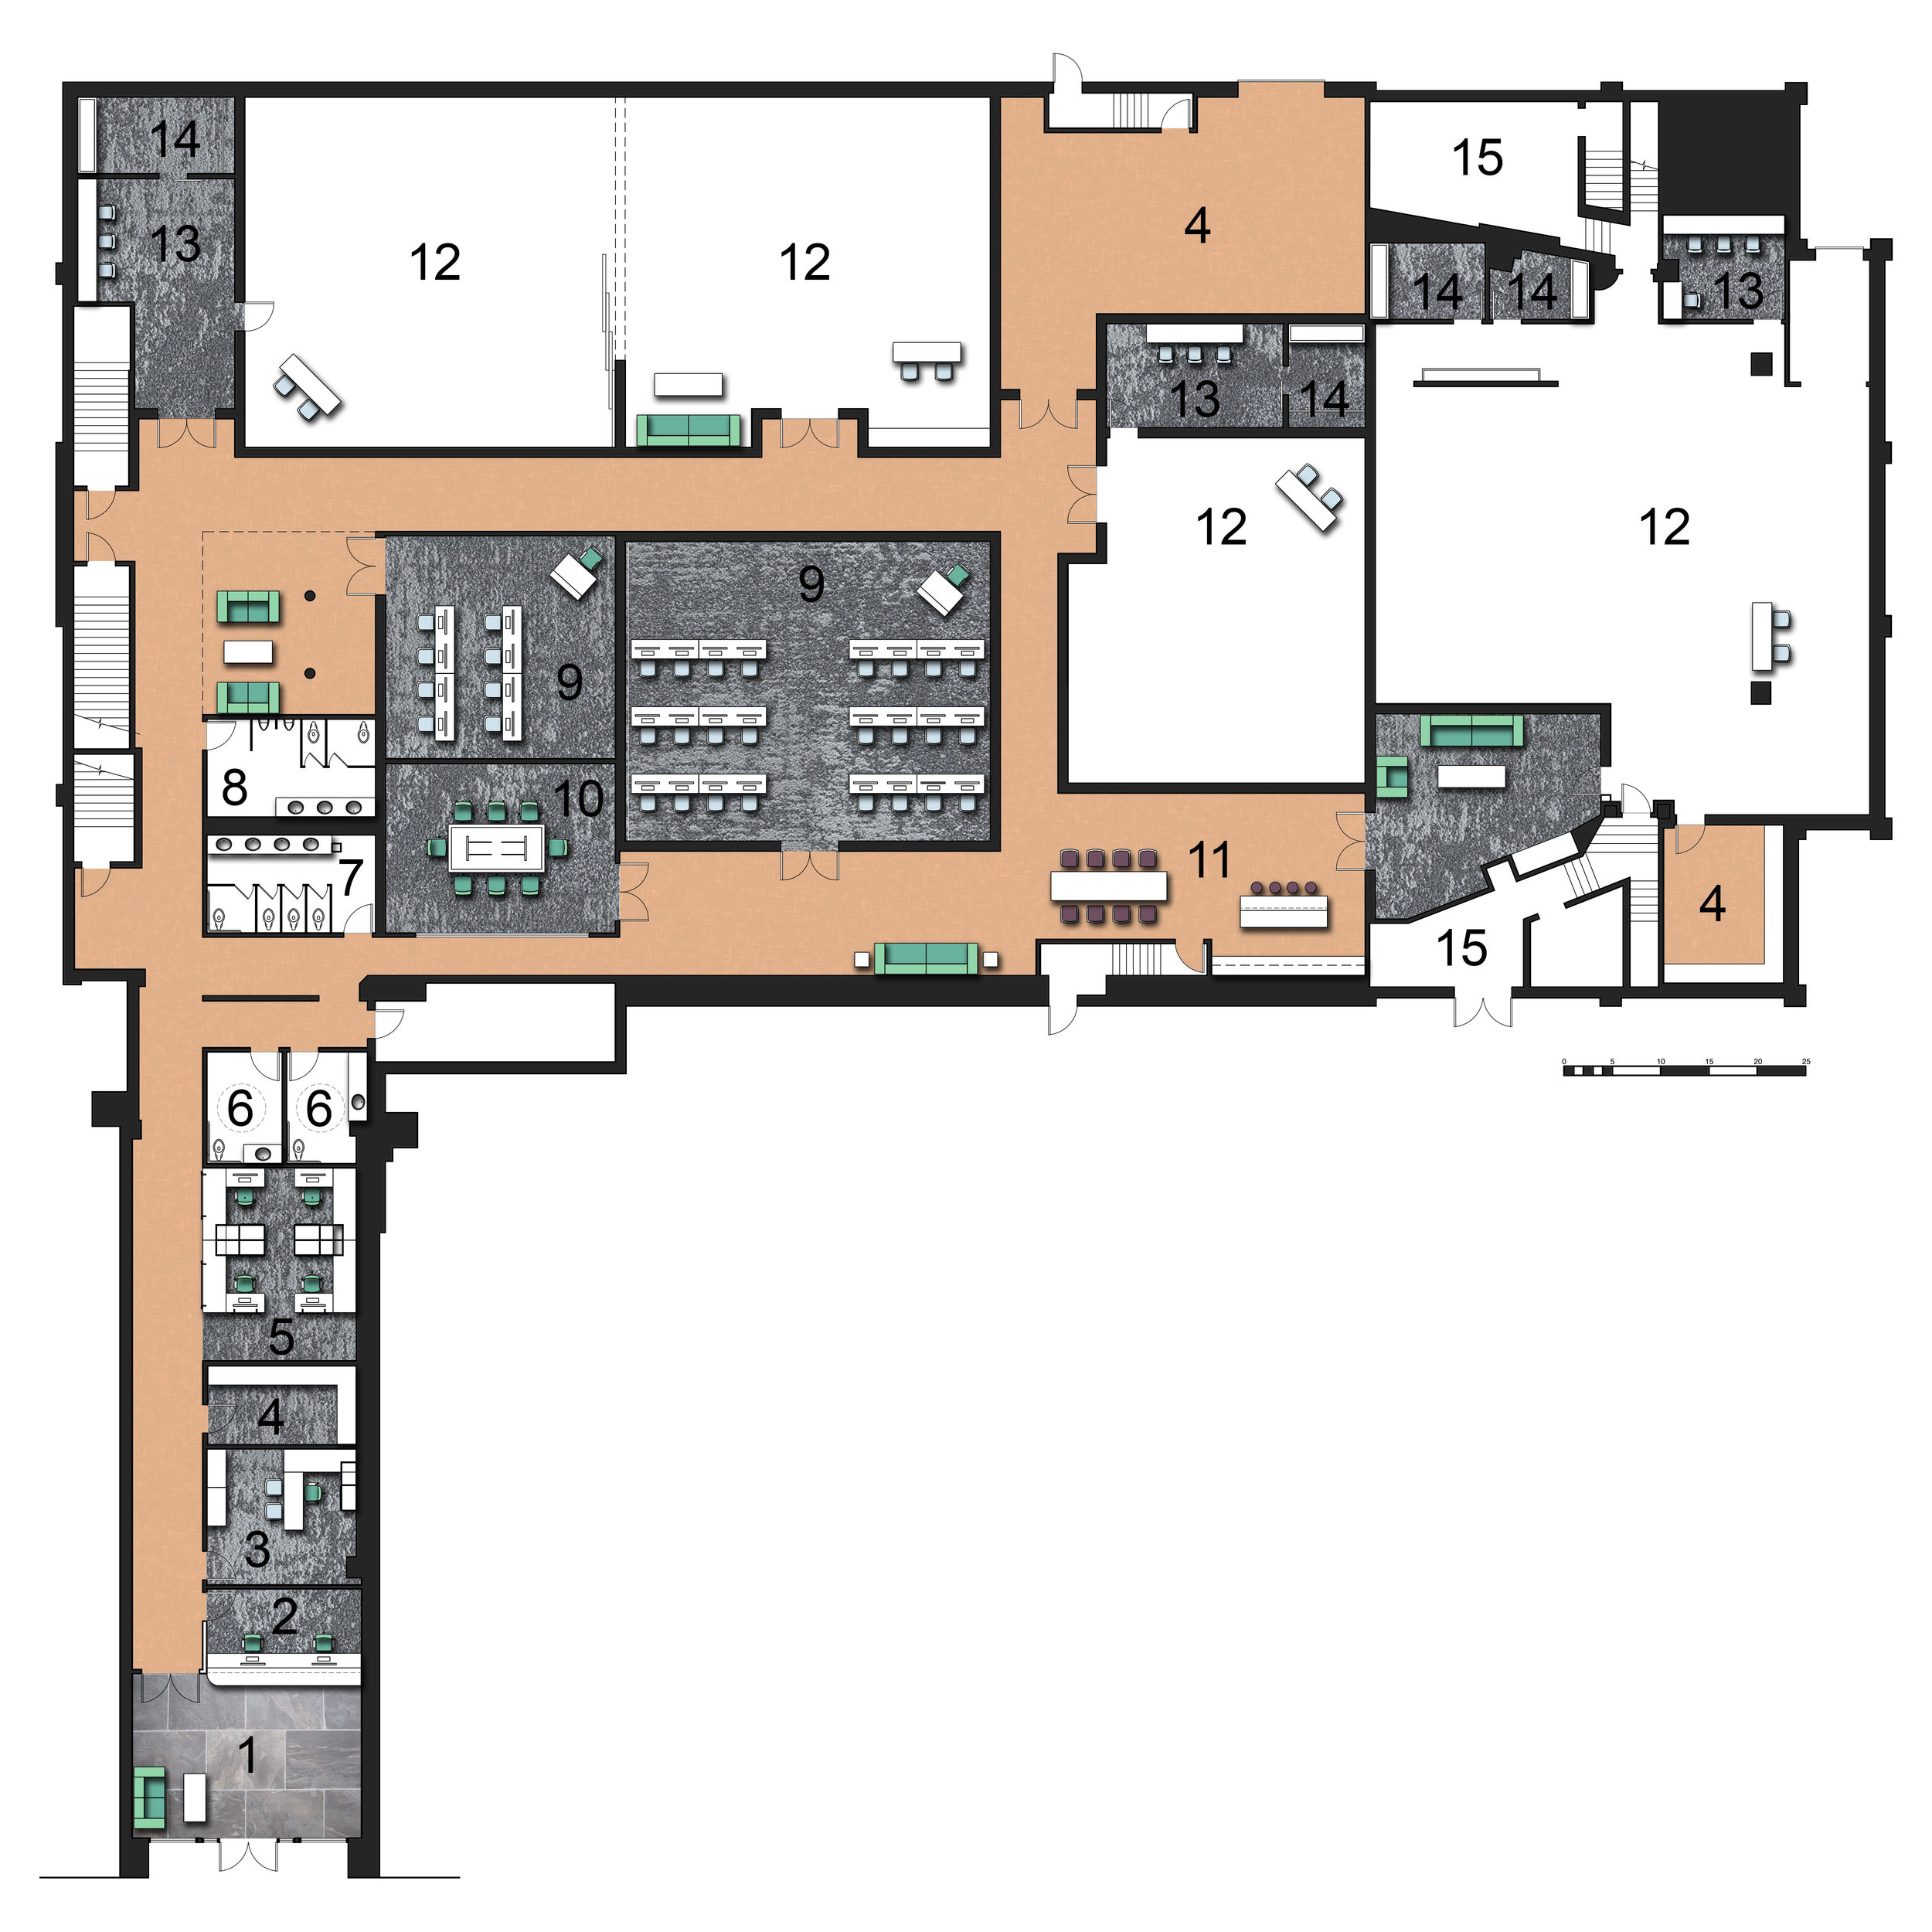 Main Floor Plan   1.Main Entry & Waiting Area  2.Reception  3.Director's Office  4.Storage  5.Open Work Area  6.ADA Restrooms  7.Women's Restroom  8.Men's Restroom  9.Classroom 10.Conference Room  11.Kitchenette  12.Silent Studio  13.Hair & Makeup 14.Dressing Room  15.Utility Area